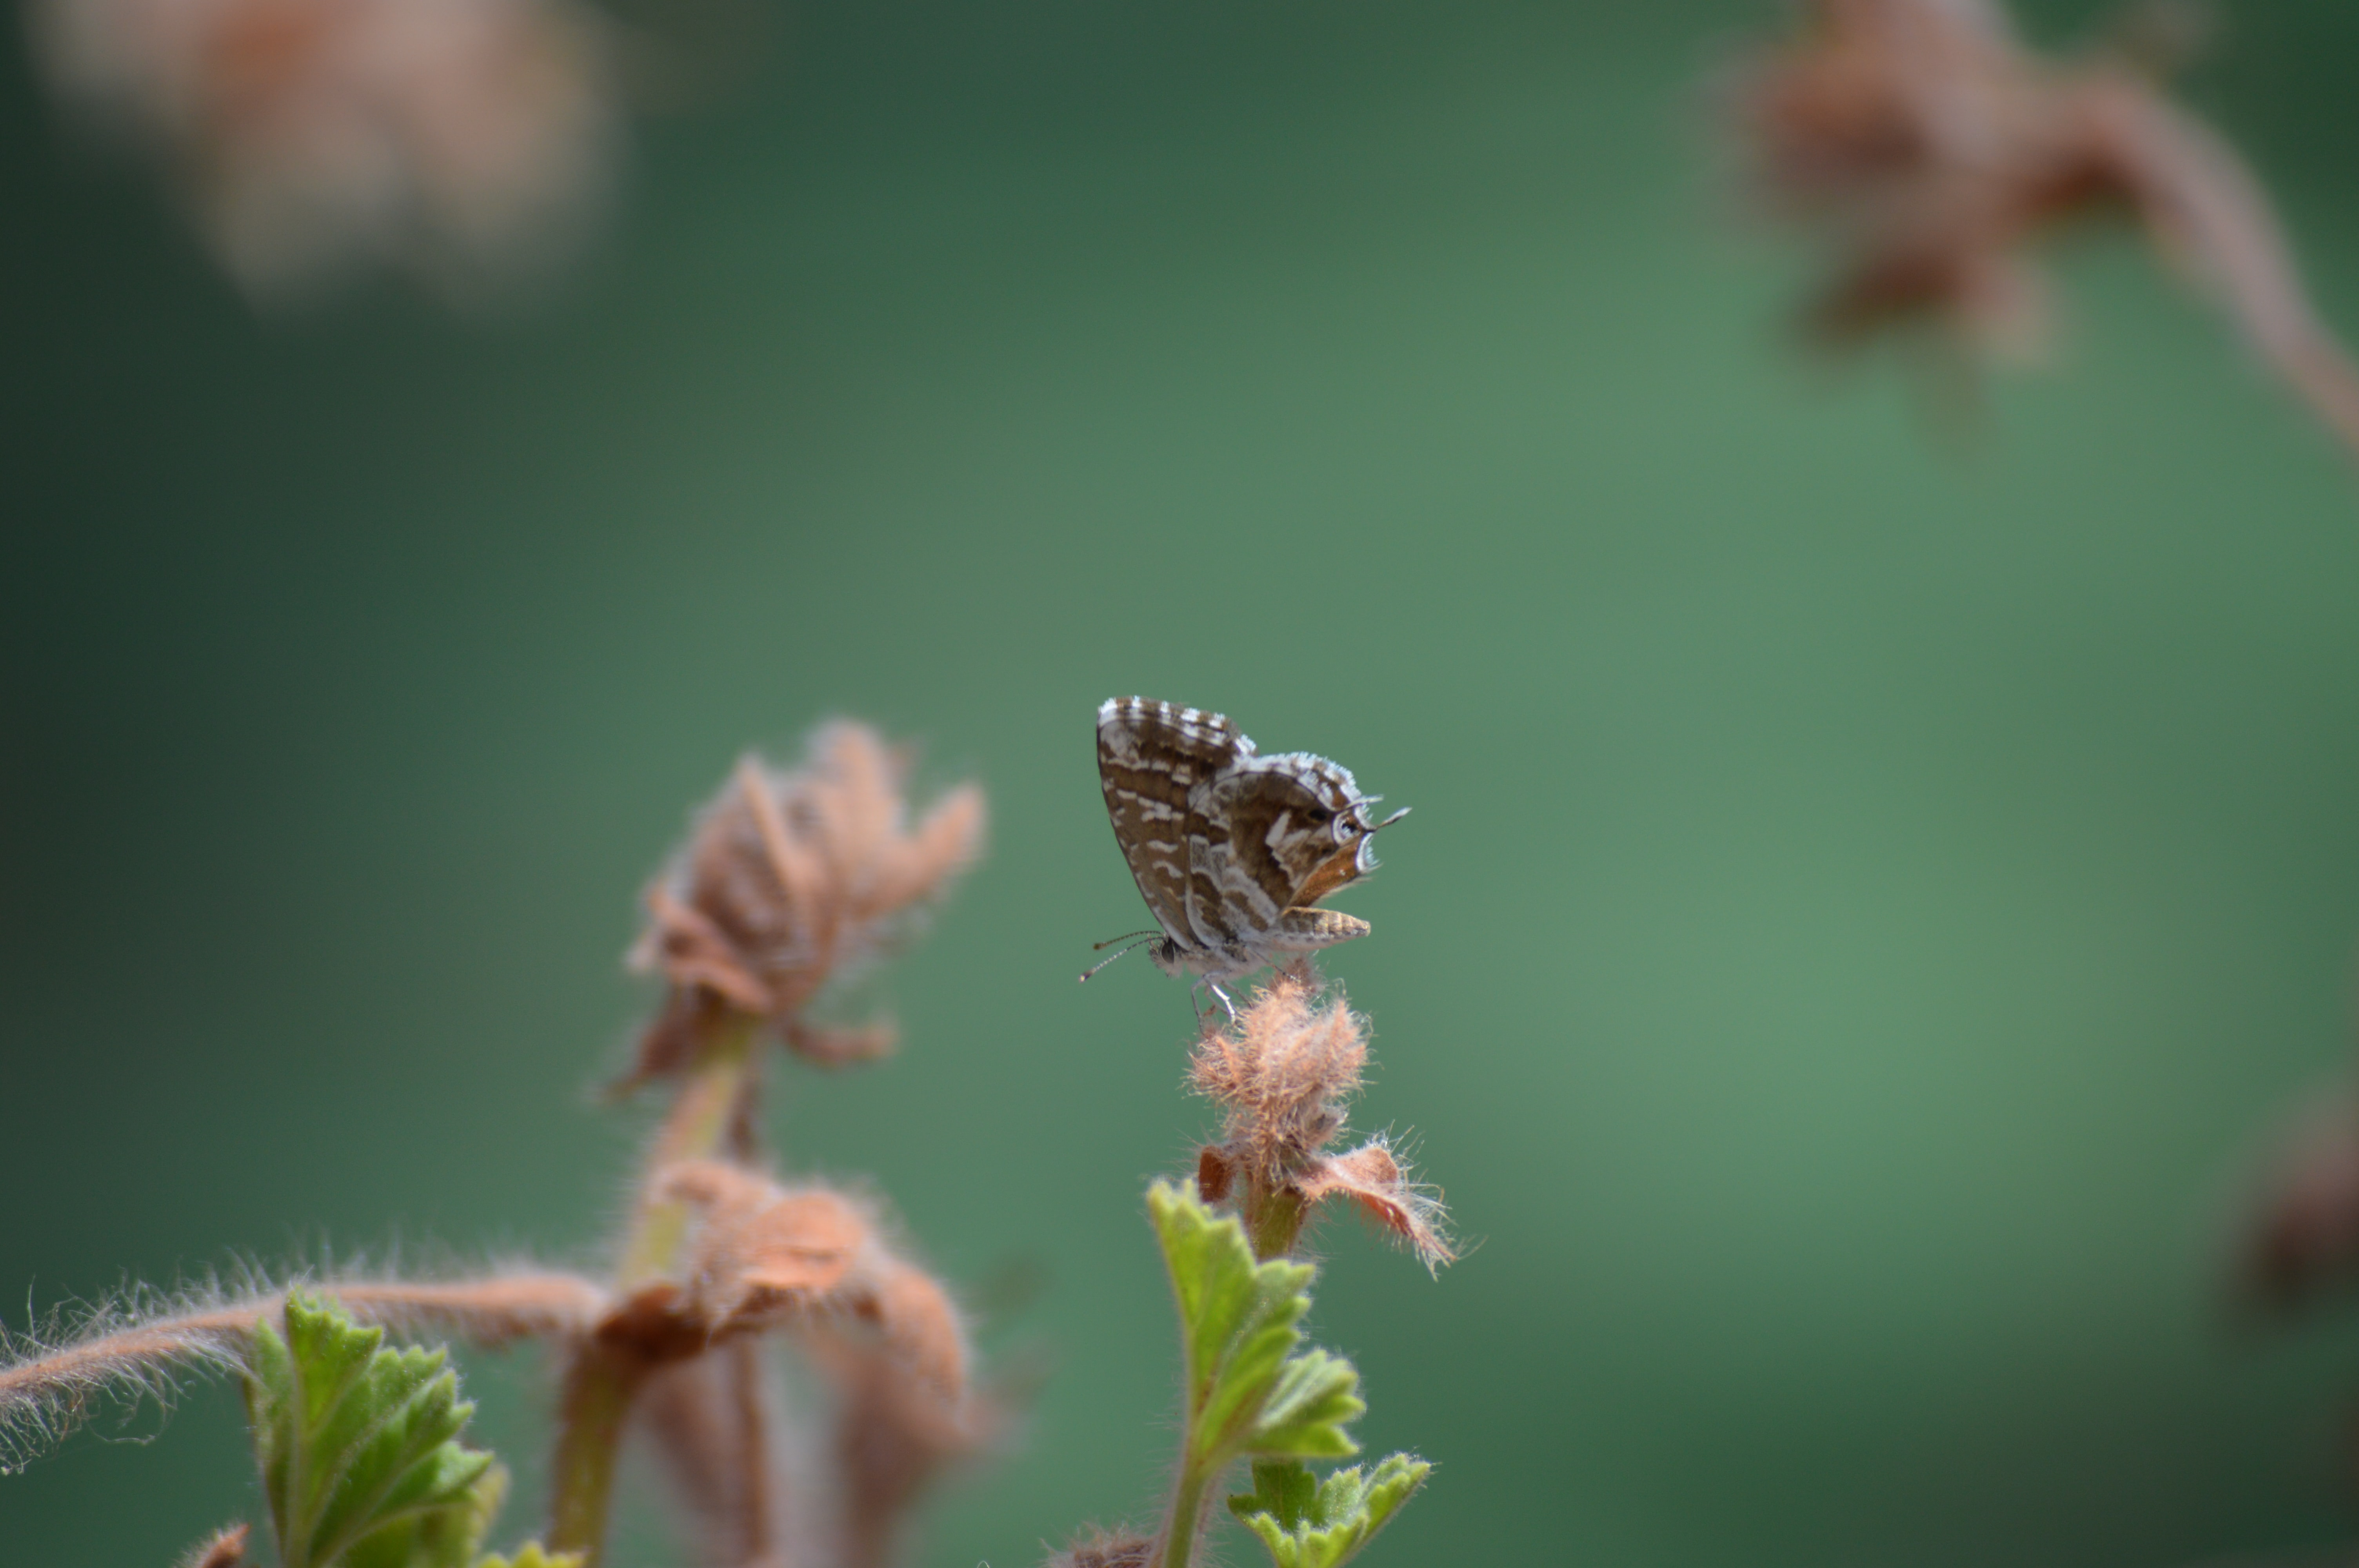 A brown moth with its wings folded sitting on a flower bud